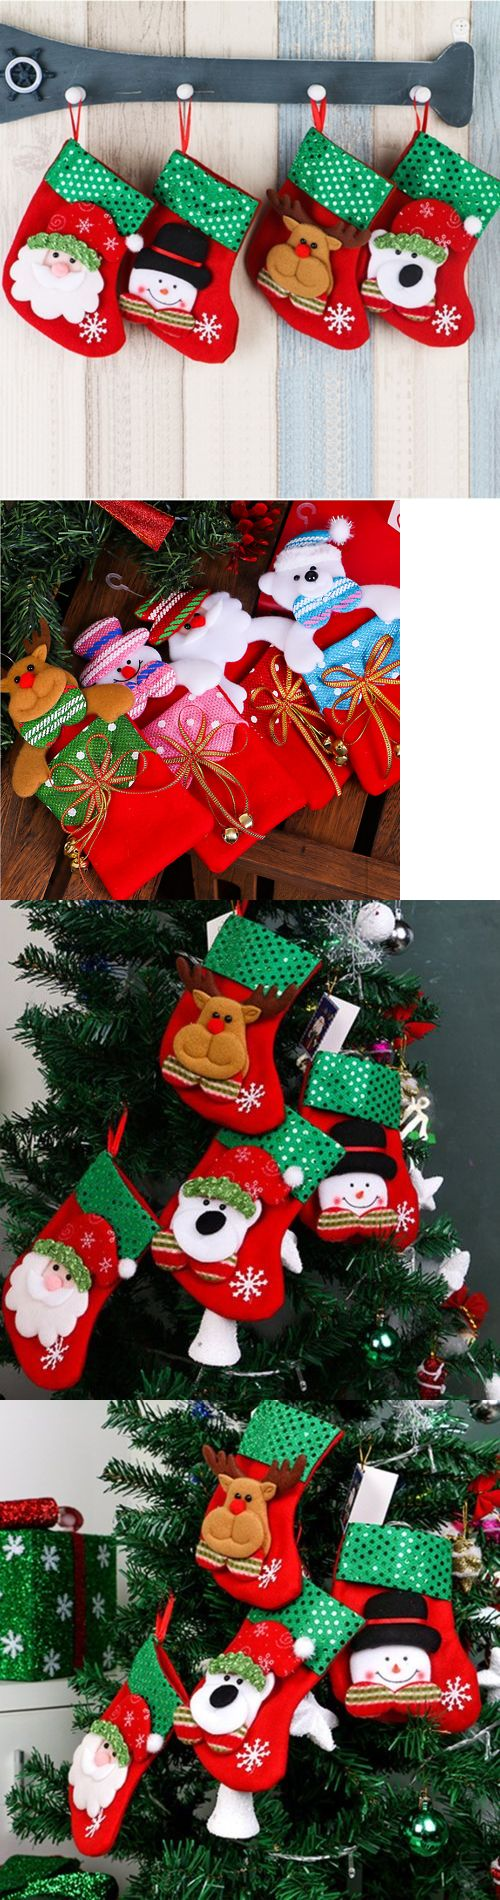 Christmas Decorations: Christmas Santa Socks Cute Ornaments Festival Party Xmas Tree Hanging Decoration -> BUY IT NOW ONLY: $0.99 on eBay!